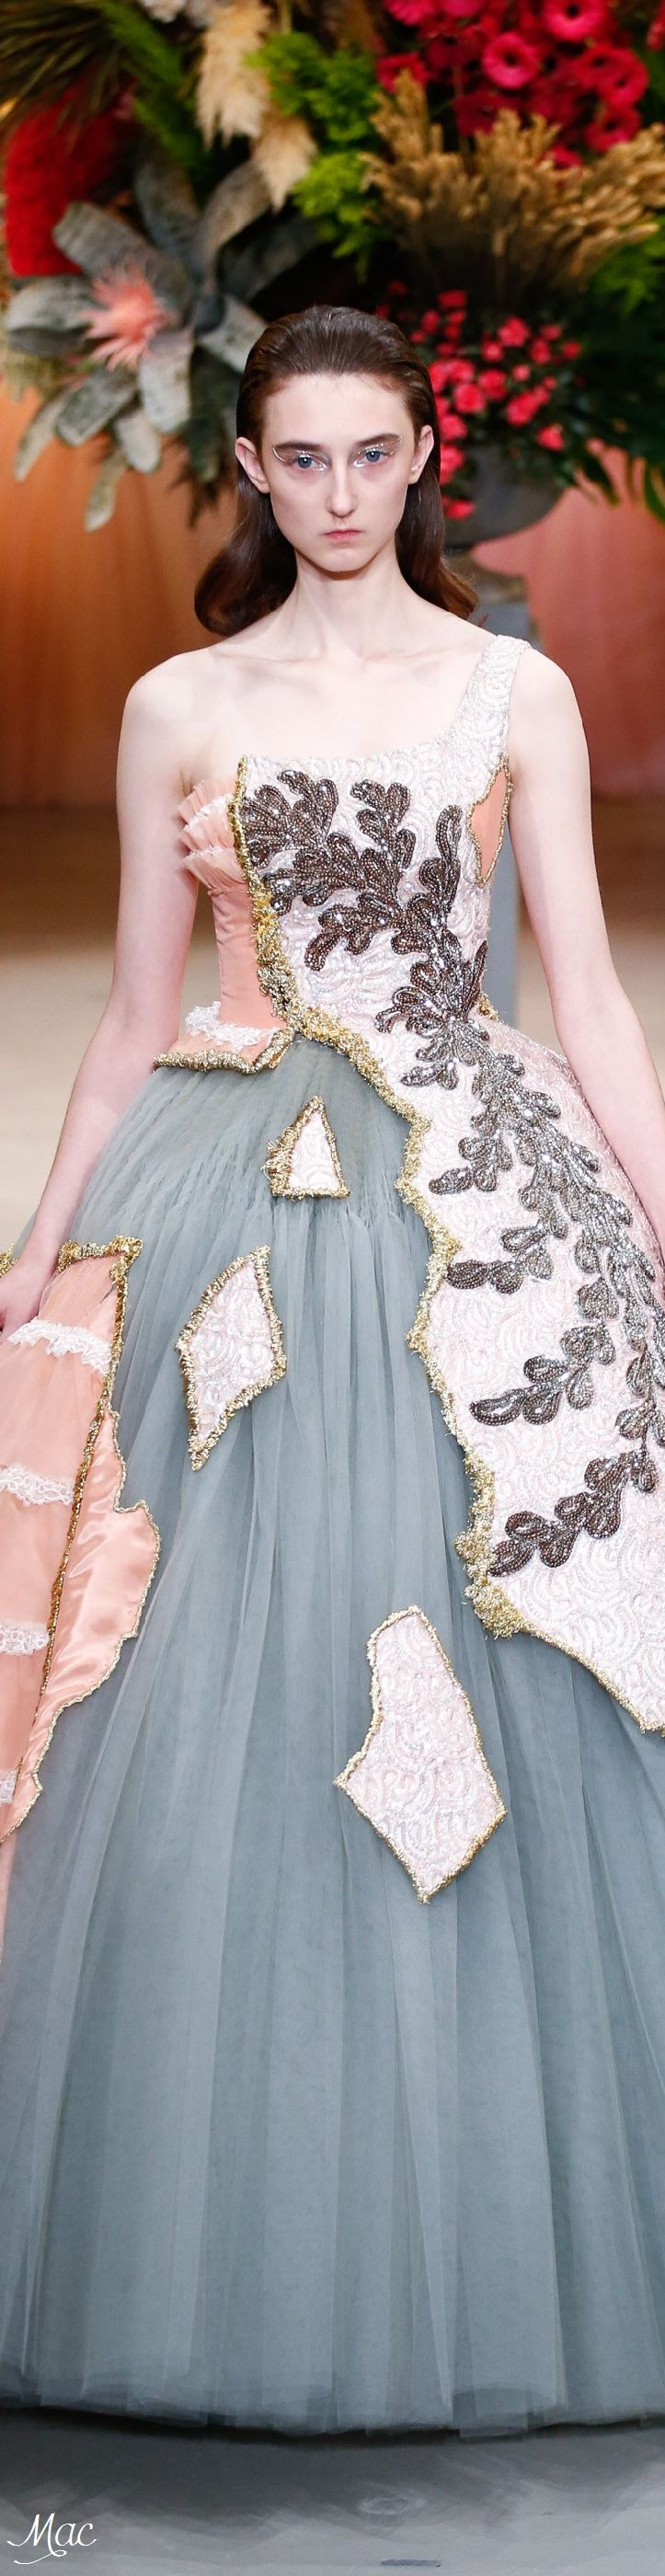 708 best images about opera fancies on pinterest kiri te for What does couture mean in french